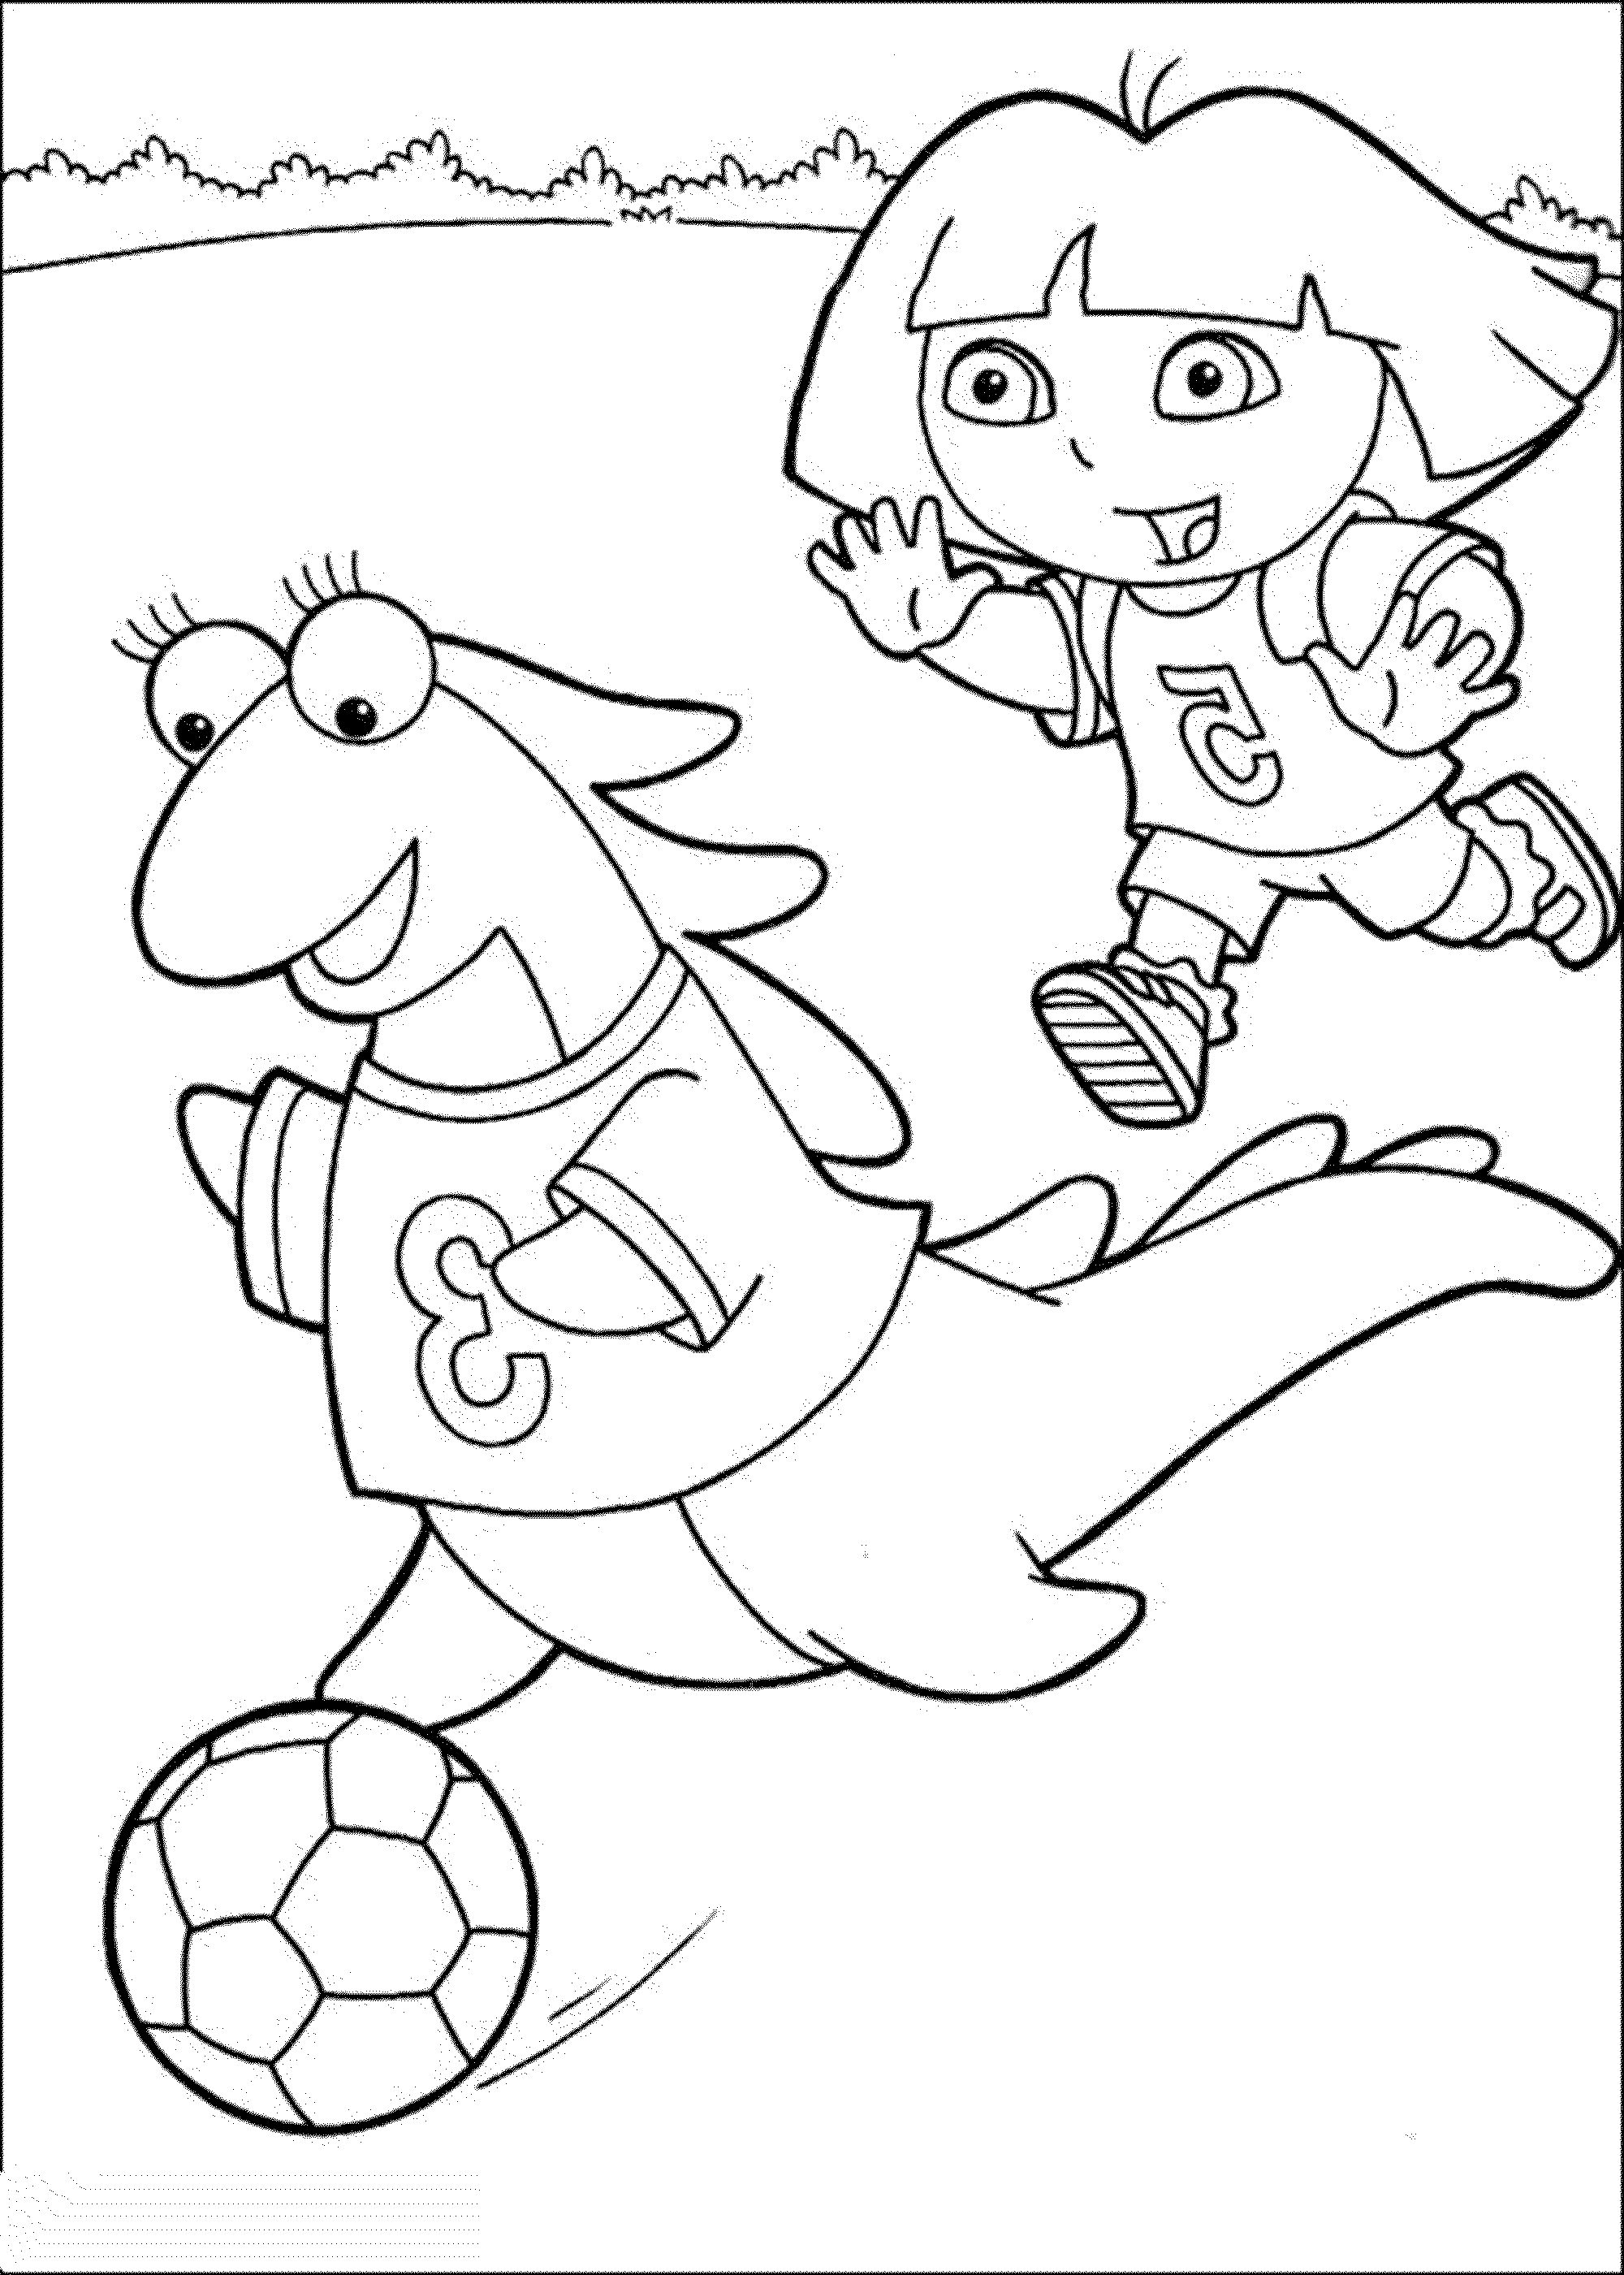 dora colouring pages print download dora coloring pages to learn new things dora pages colouring